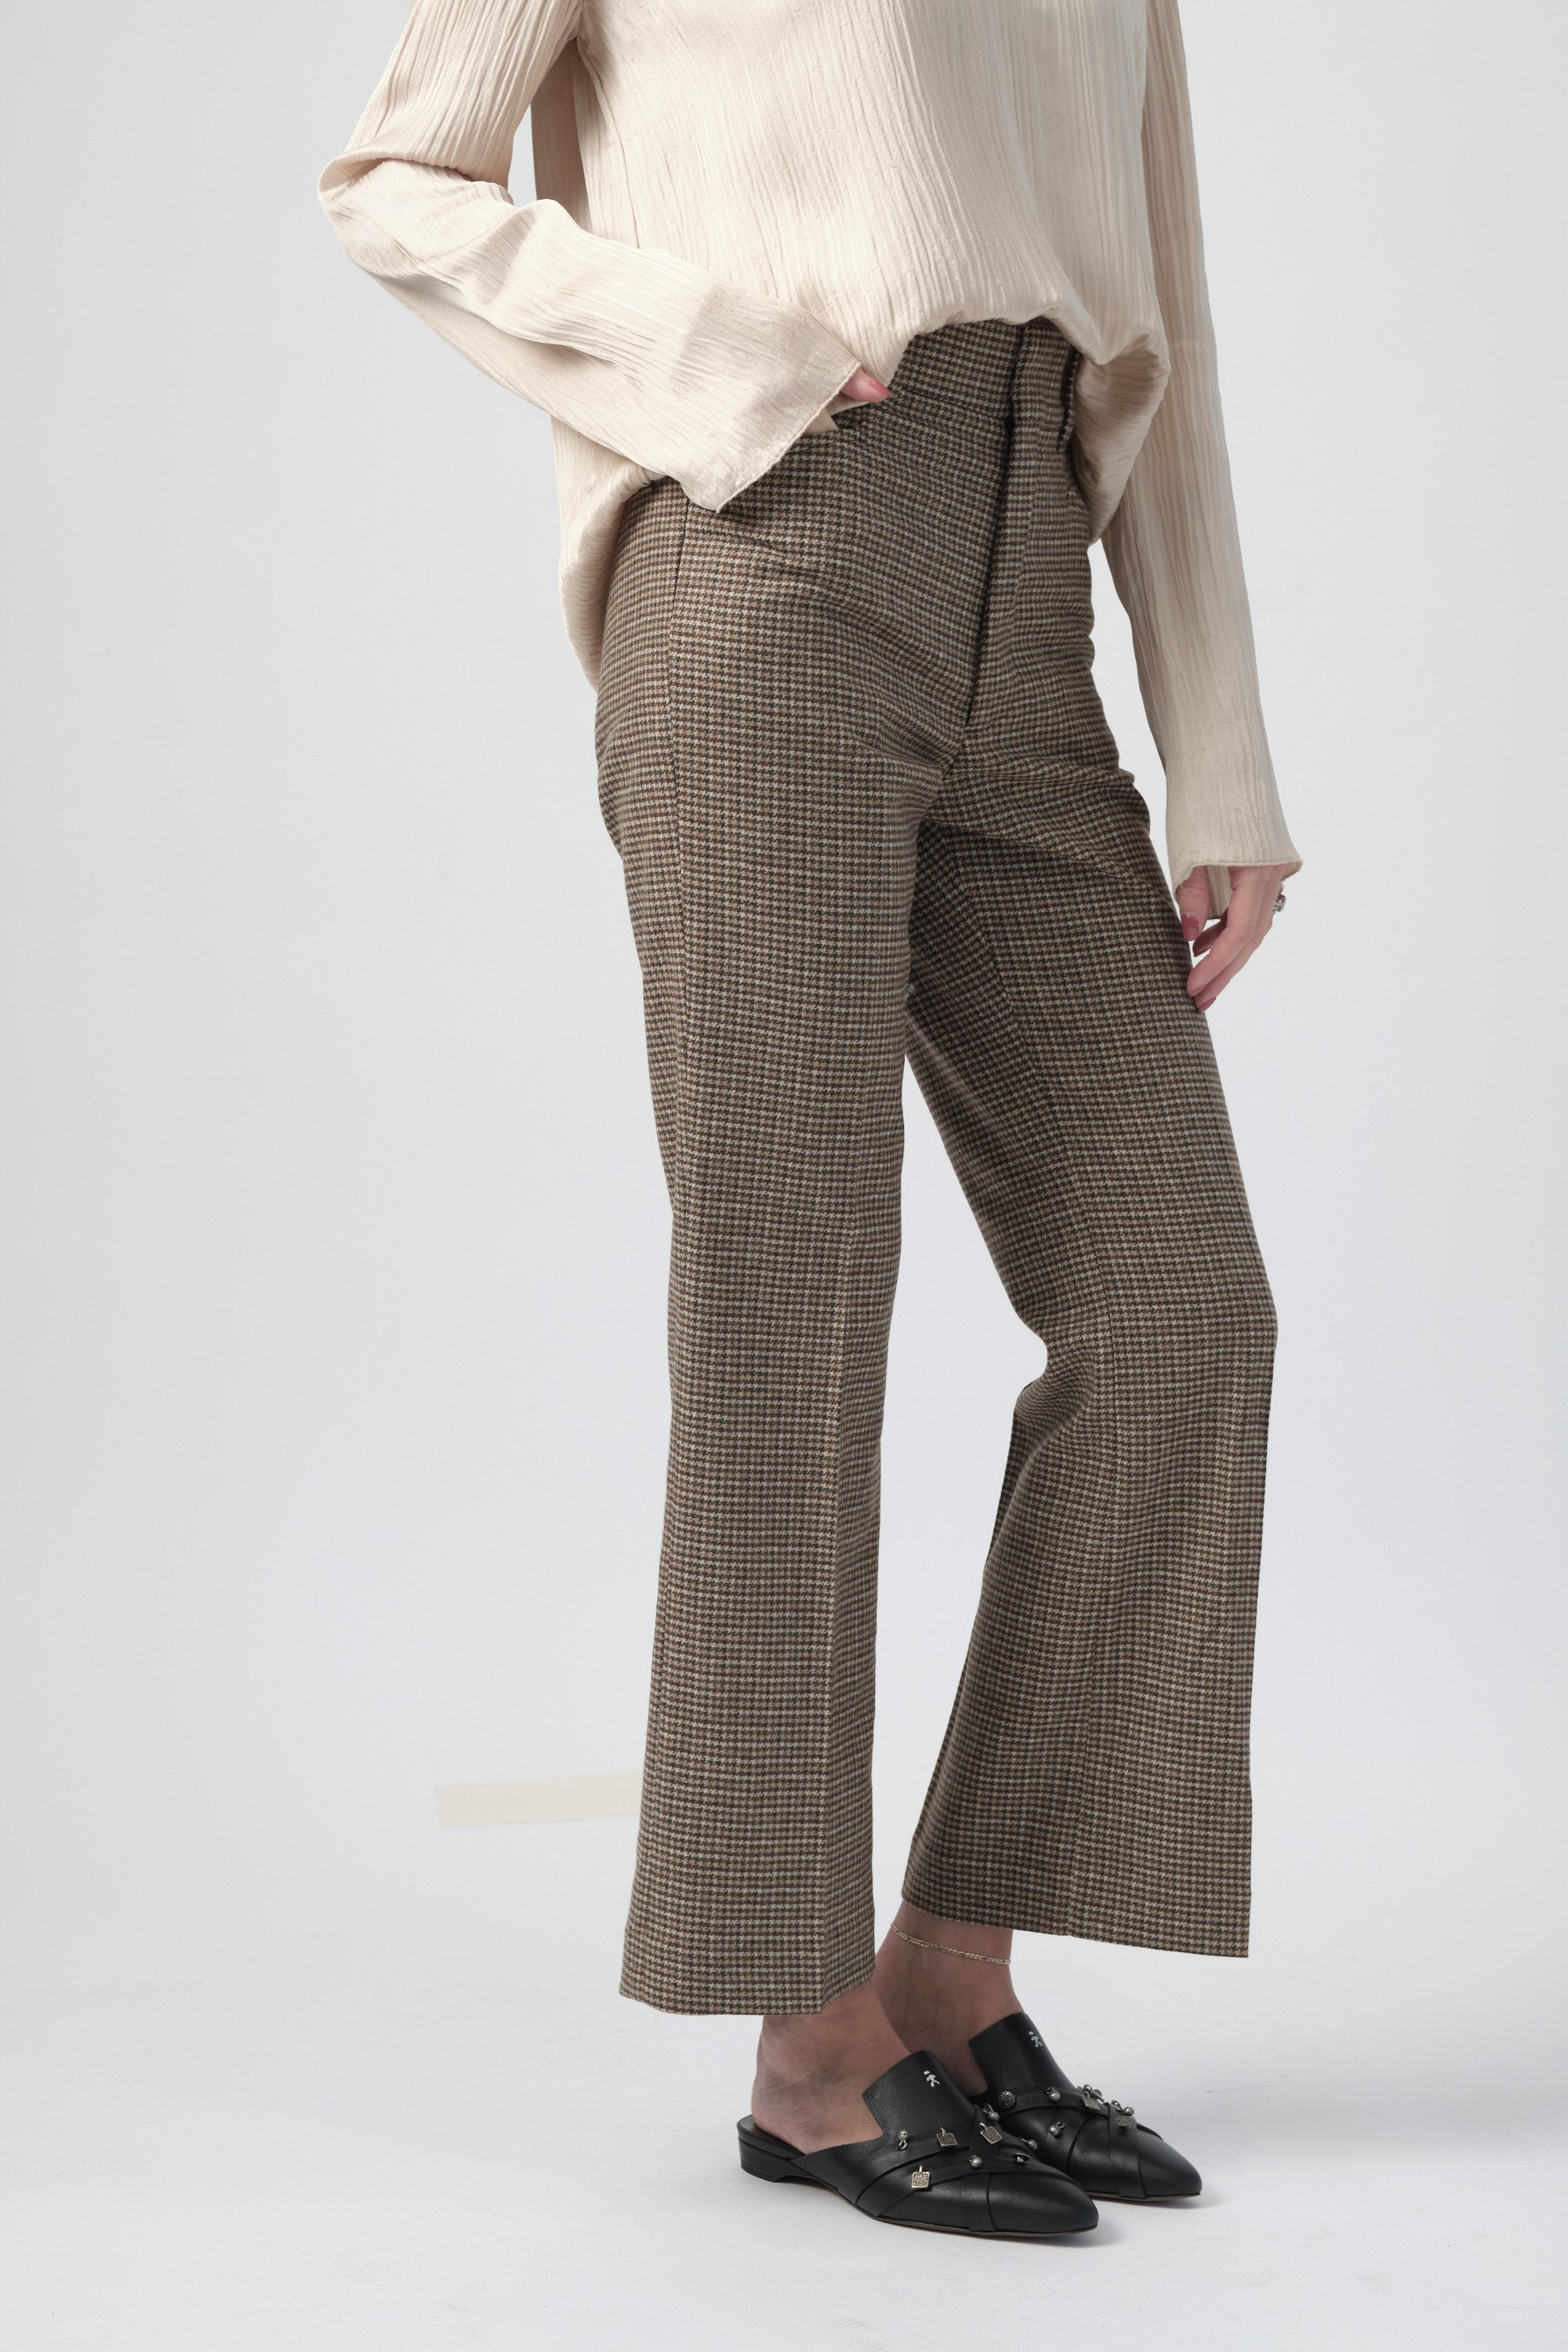 70s Trouser Pant in Plaid